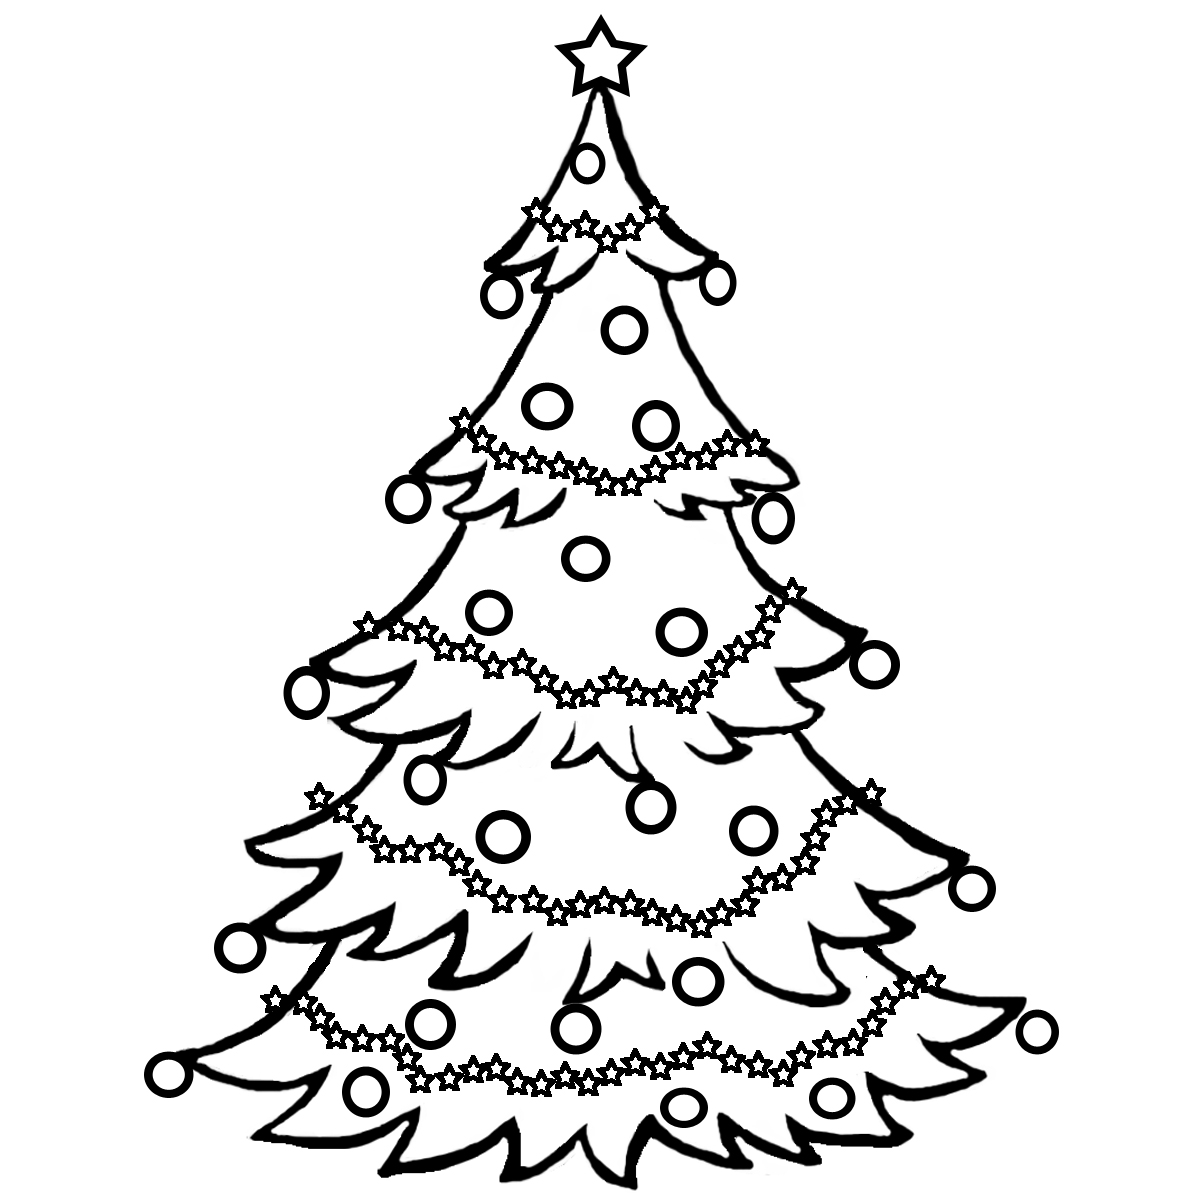 Xmas Stuff For > Christmas Tree Drawings With Presents